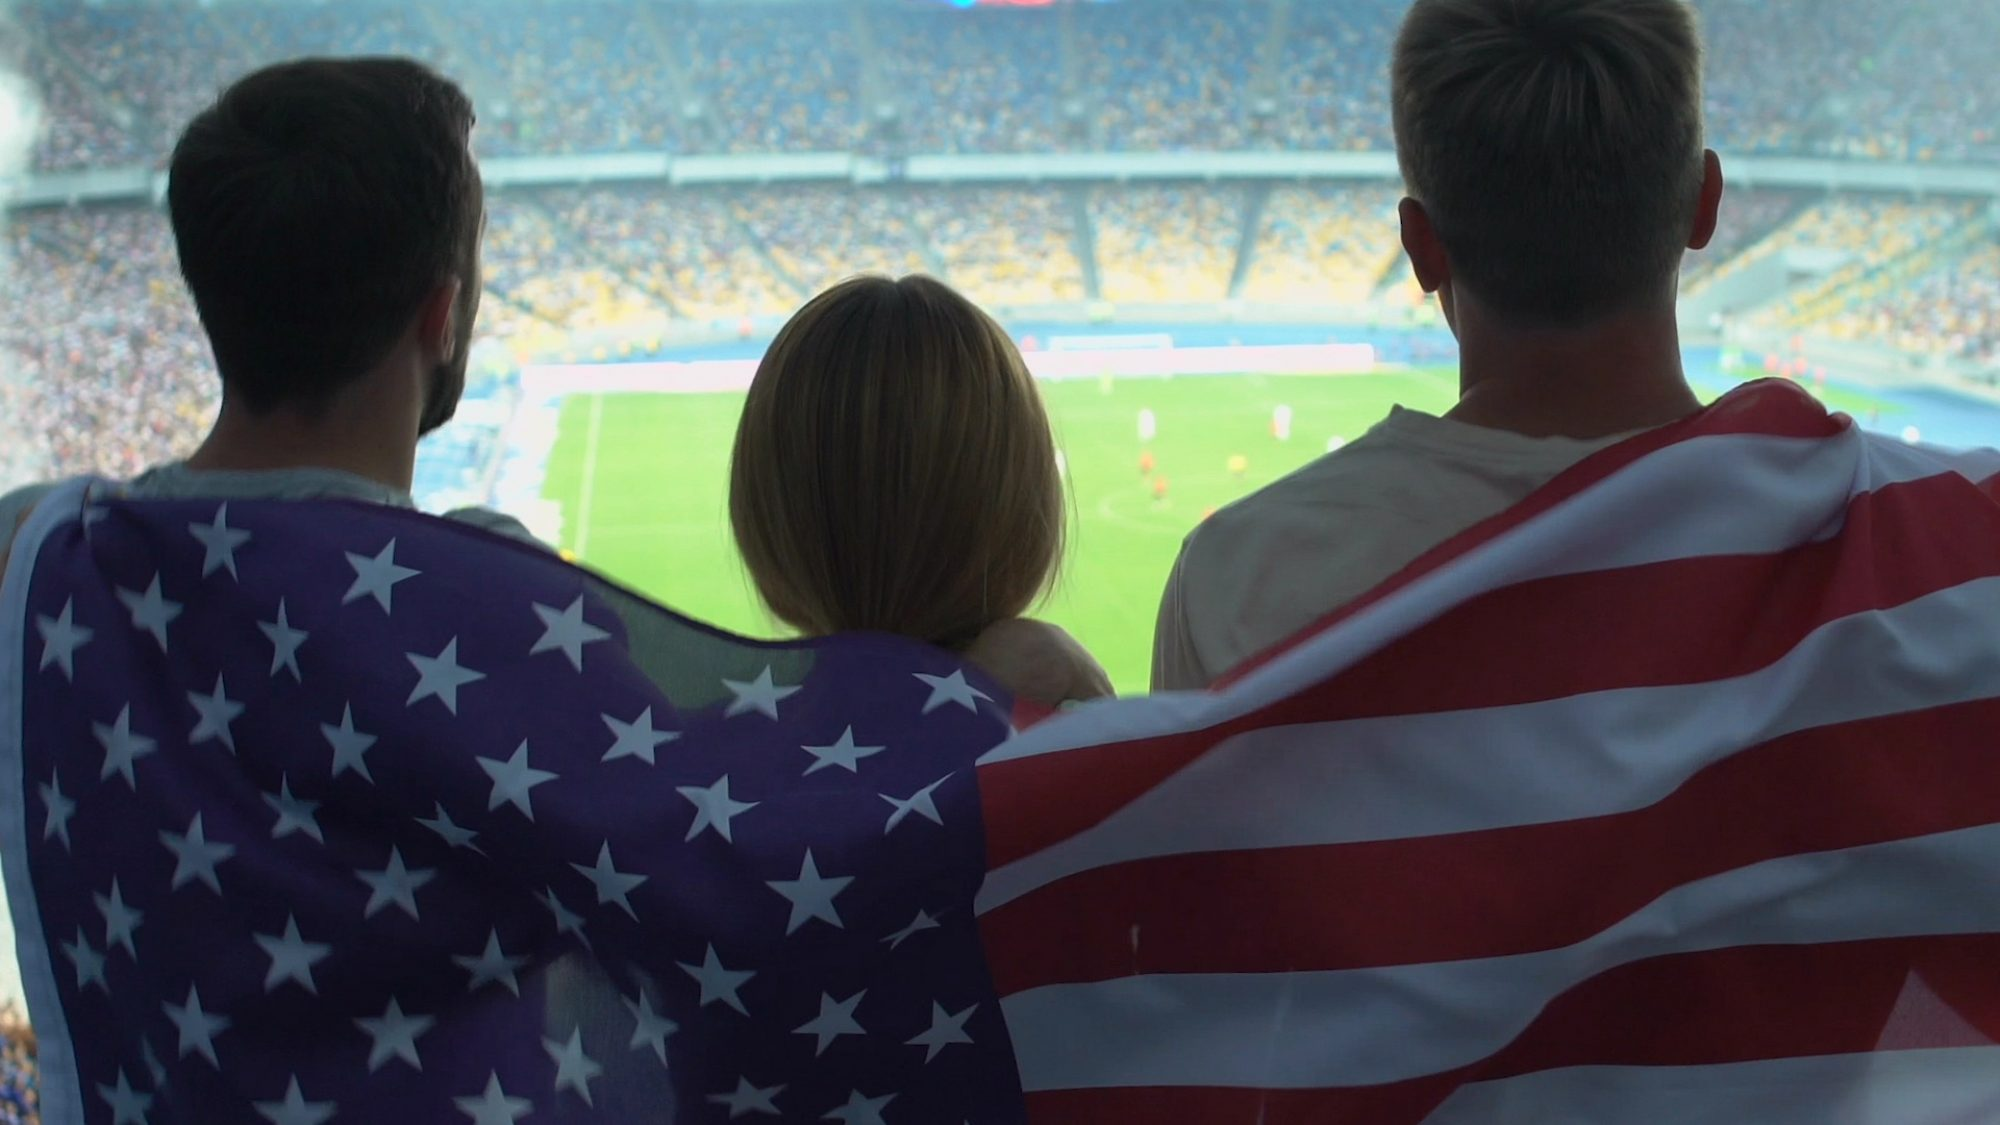 Fans in stadium with United States flag.